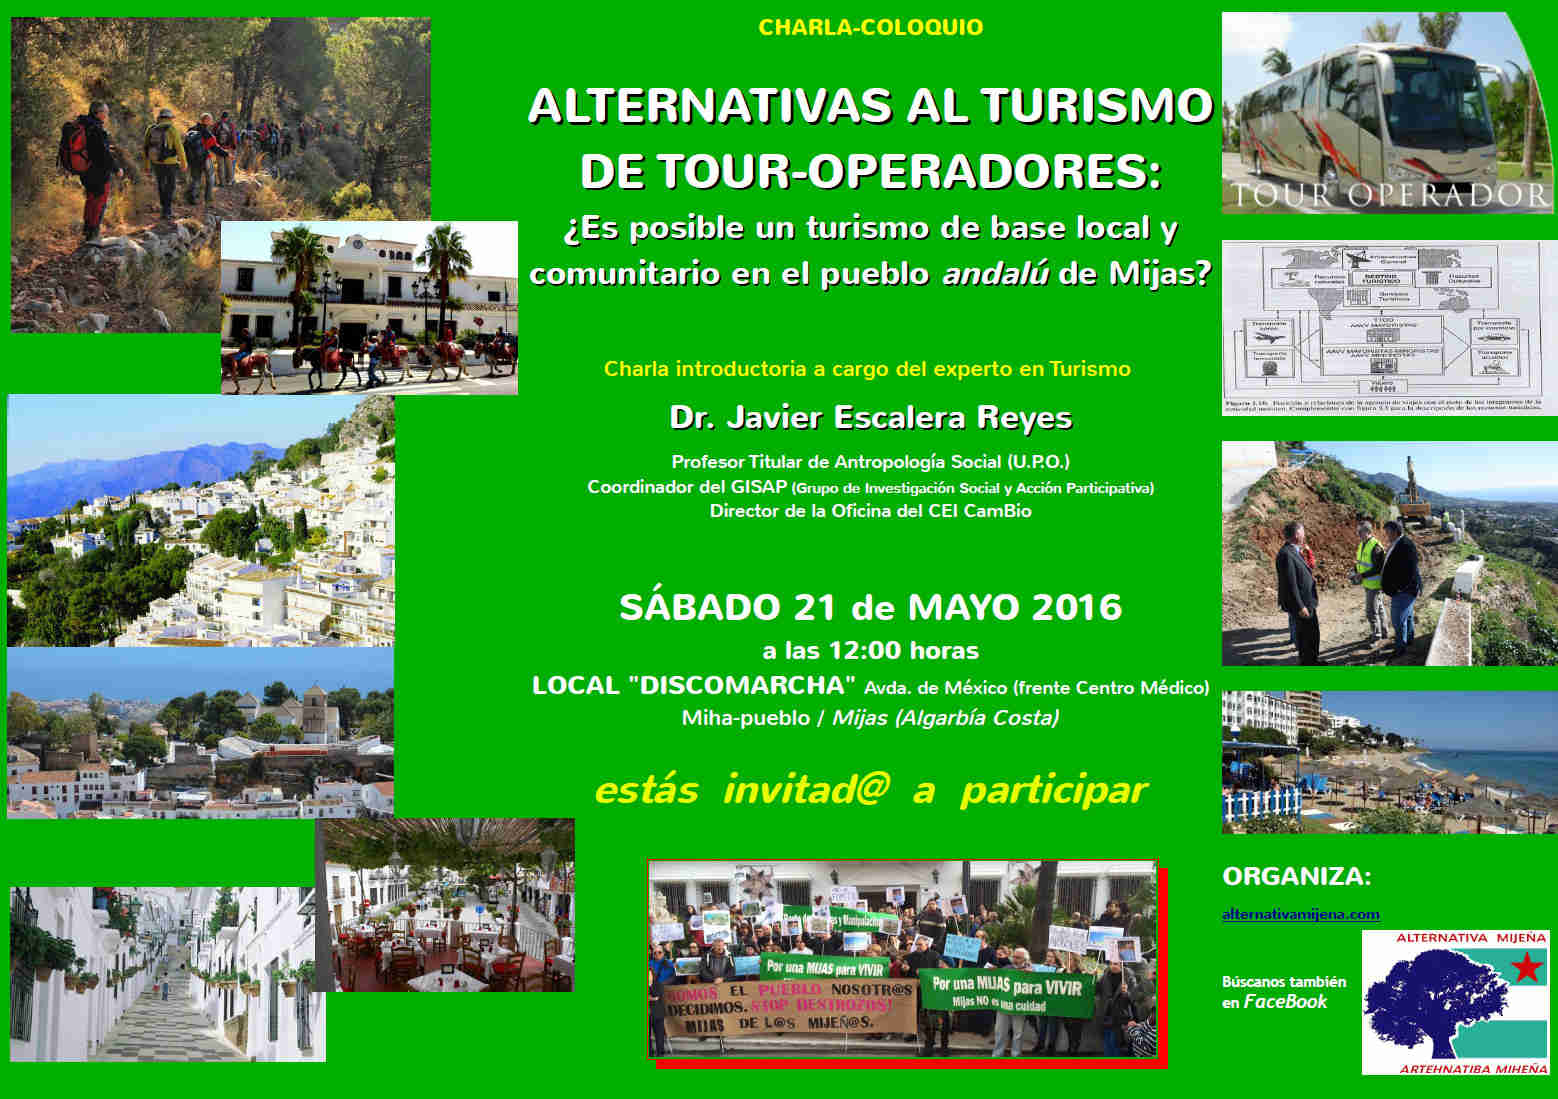 Cartel Coloquio Turismo alternativas para Miha, 21-5-16a